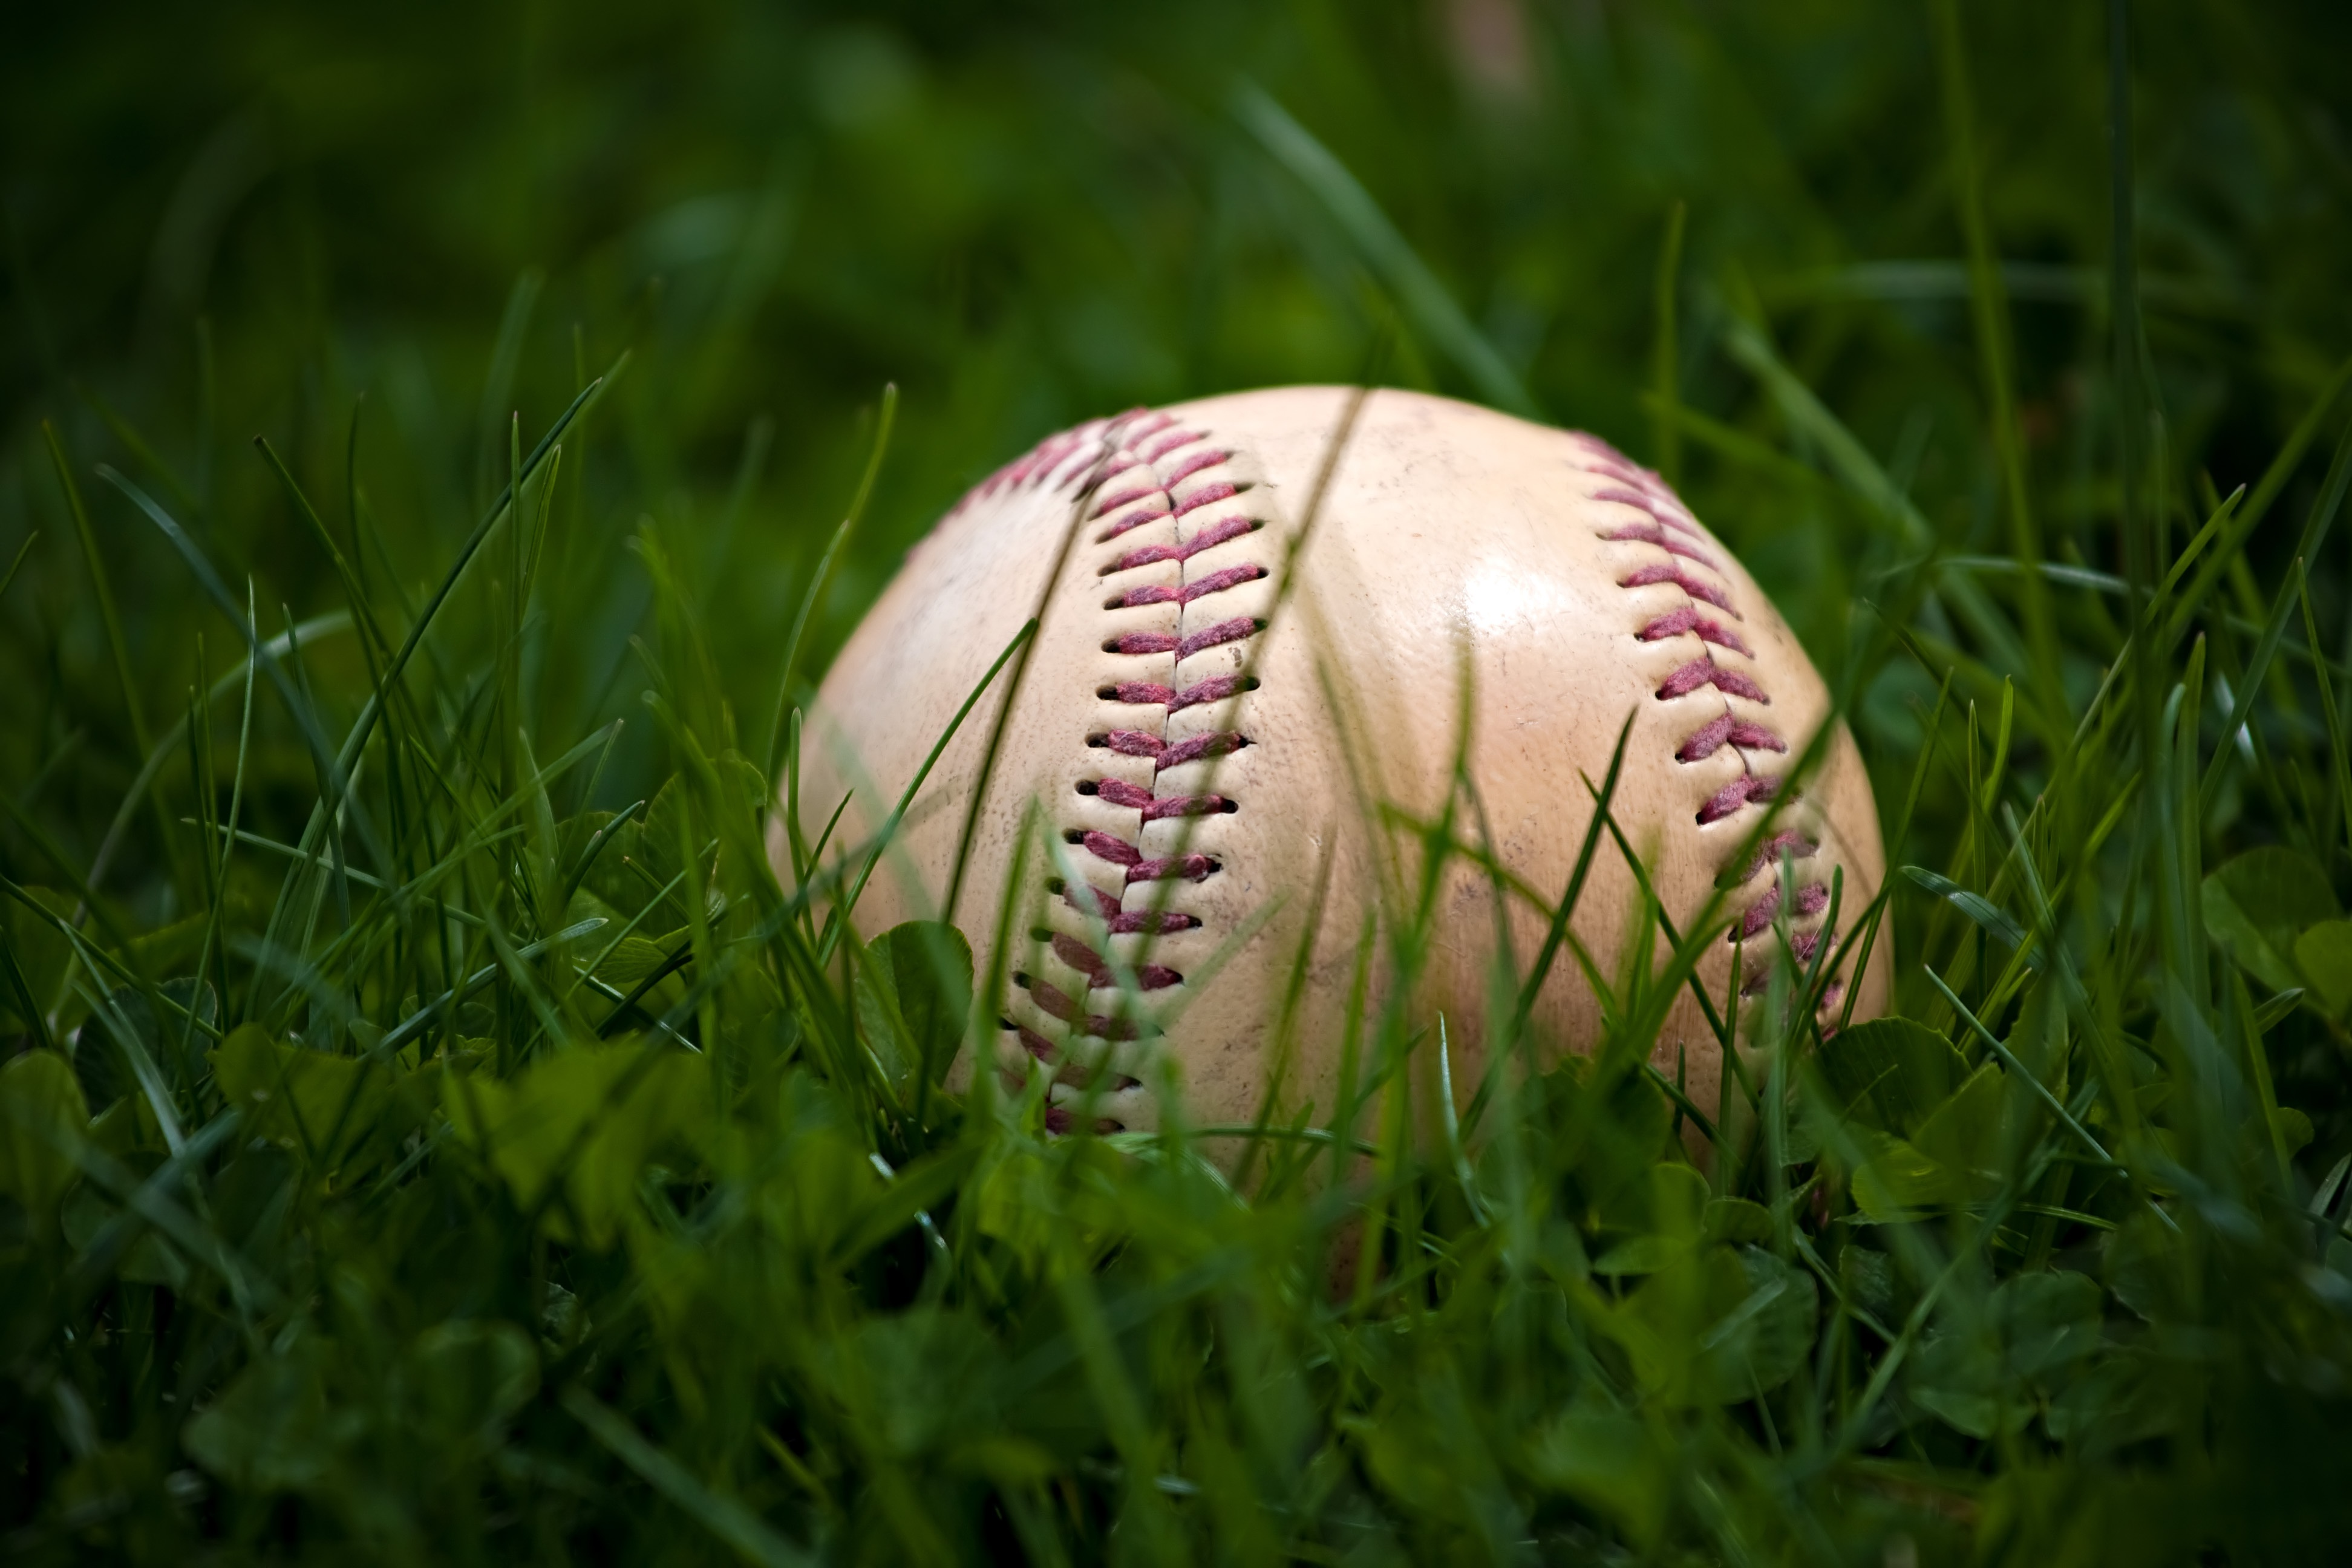 Baseball in Grass in an Article About Youth Baseball and Softball Grants